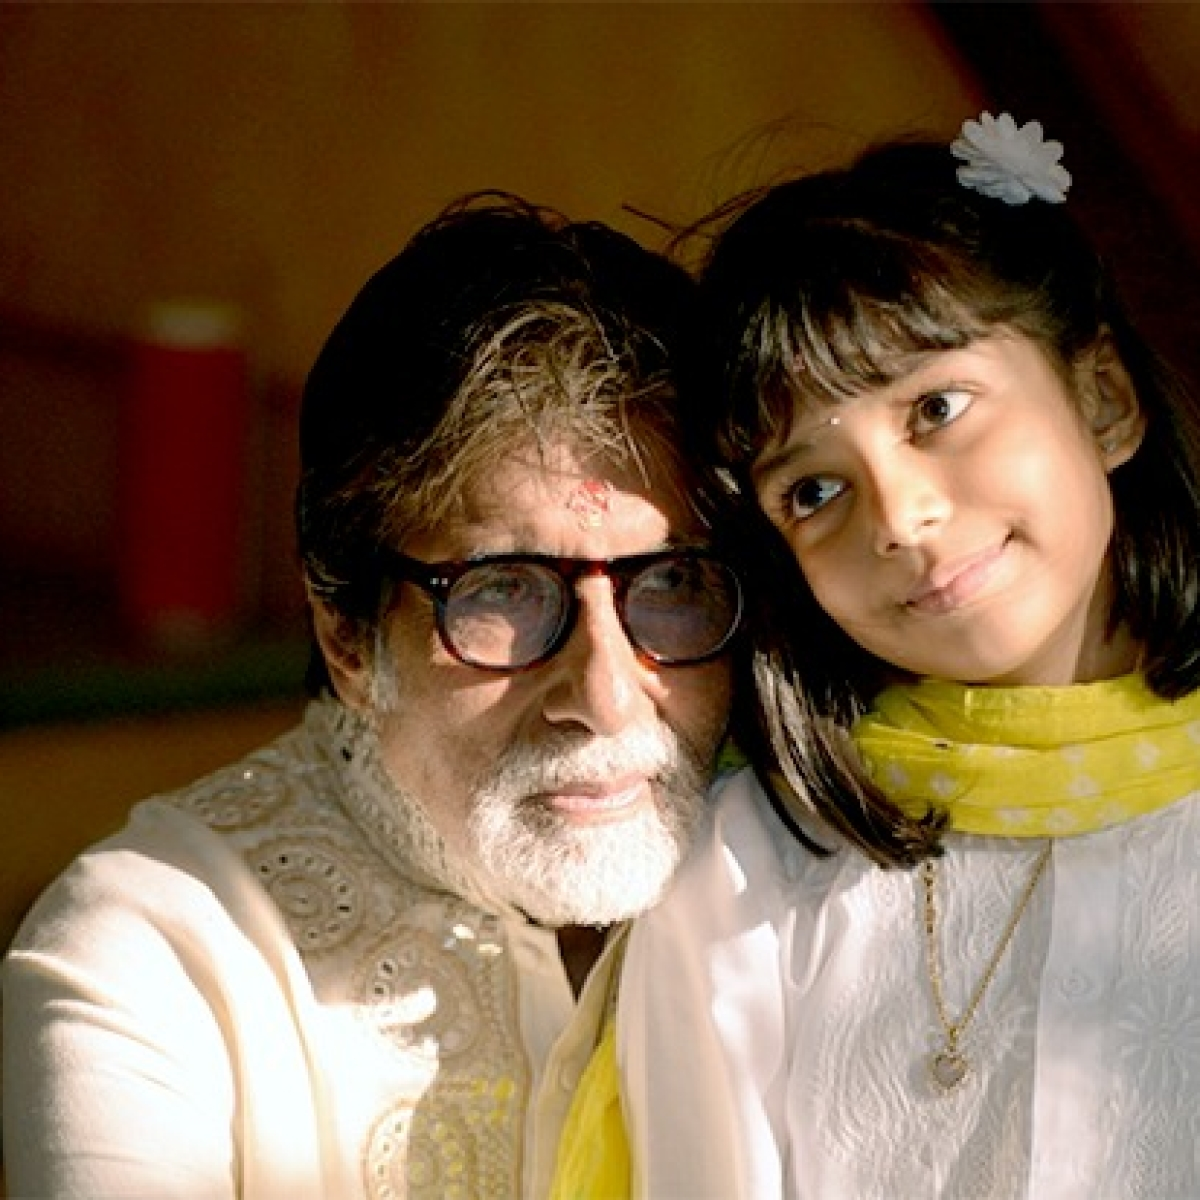 Amitabh Bachchan Discharged: Big B shares pic with Aaradhya, thanks fans for concern